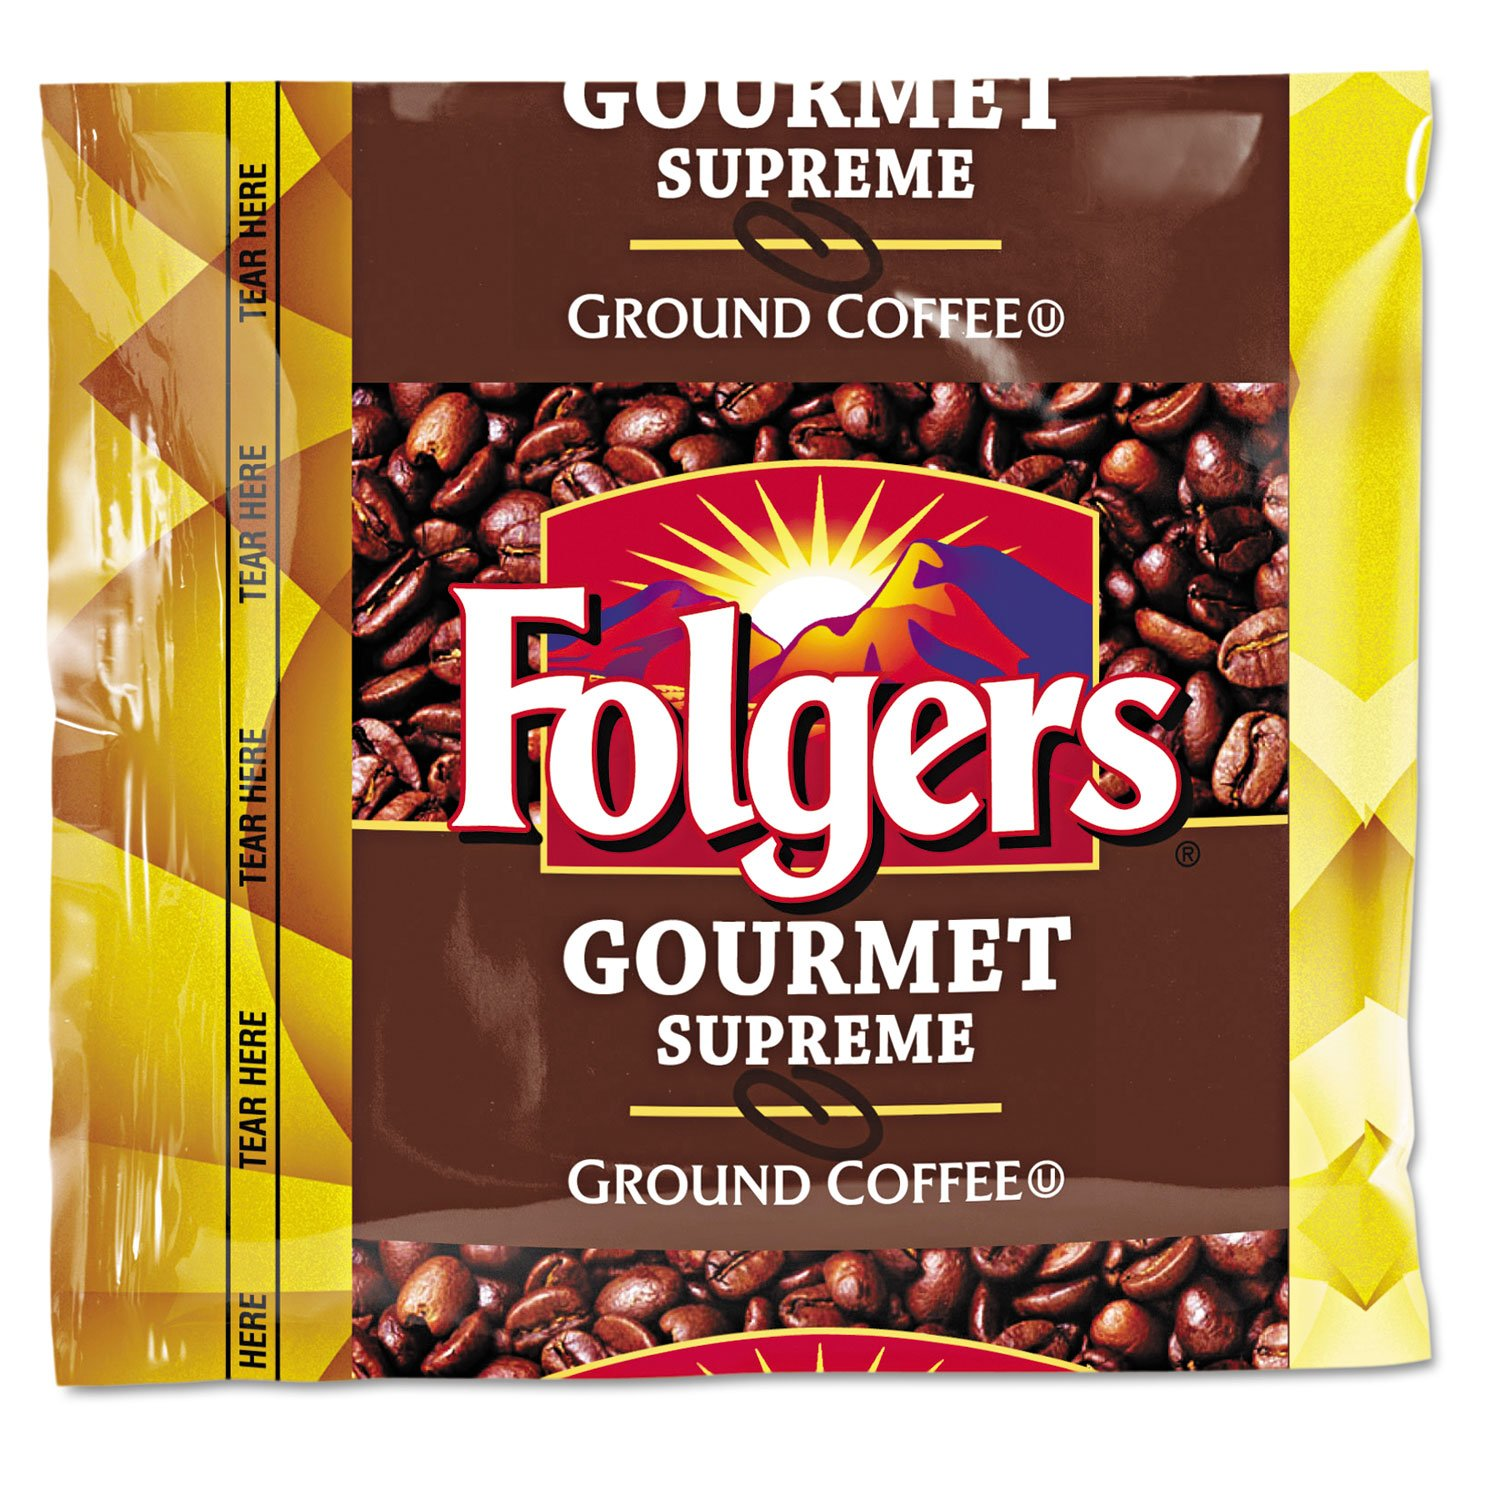 Folgers 06437 Coffee, Fraction Pack, Gourmet Supreme, 1.75oz, 42/Carton by Folgers (Image #1)